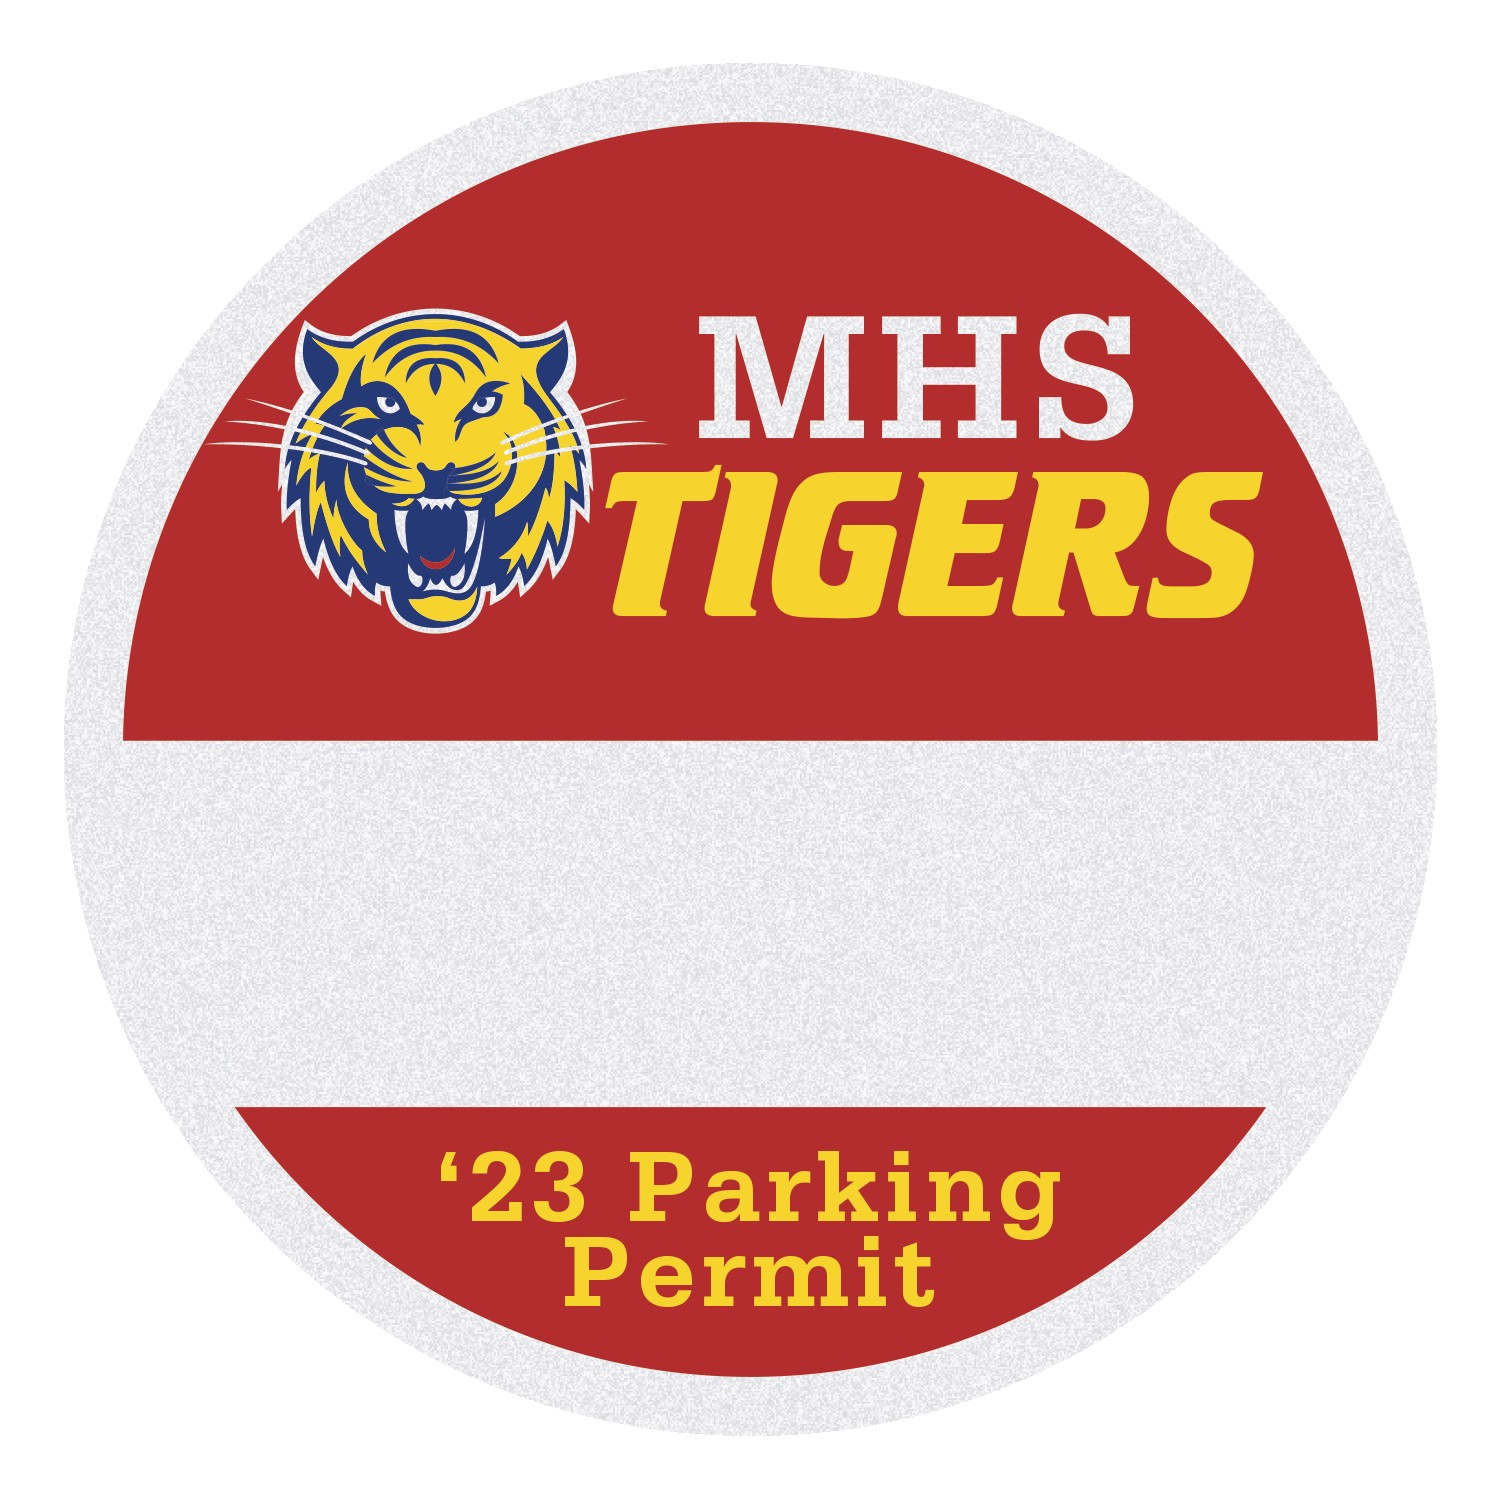 "385489559-183 - Round White Reflective Outside Parking Permit Decal (2 1/2"" Diameter) - thumbnail"